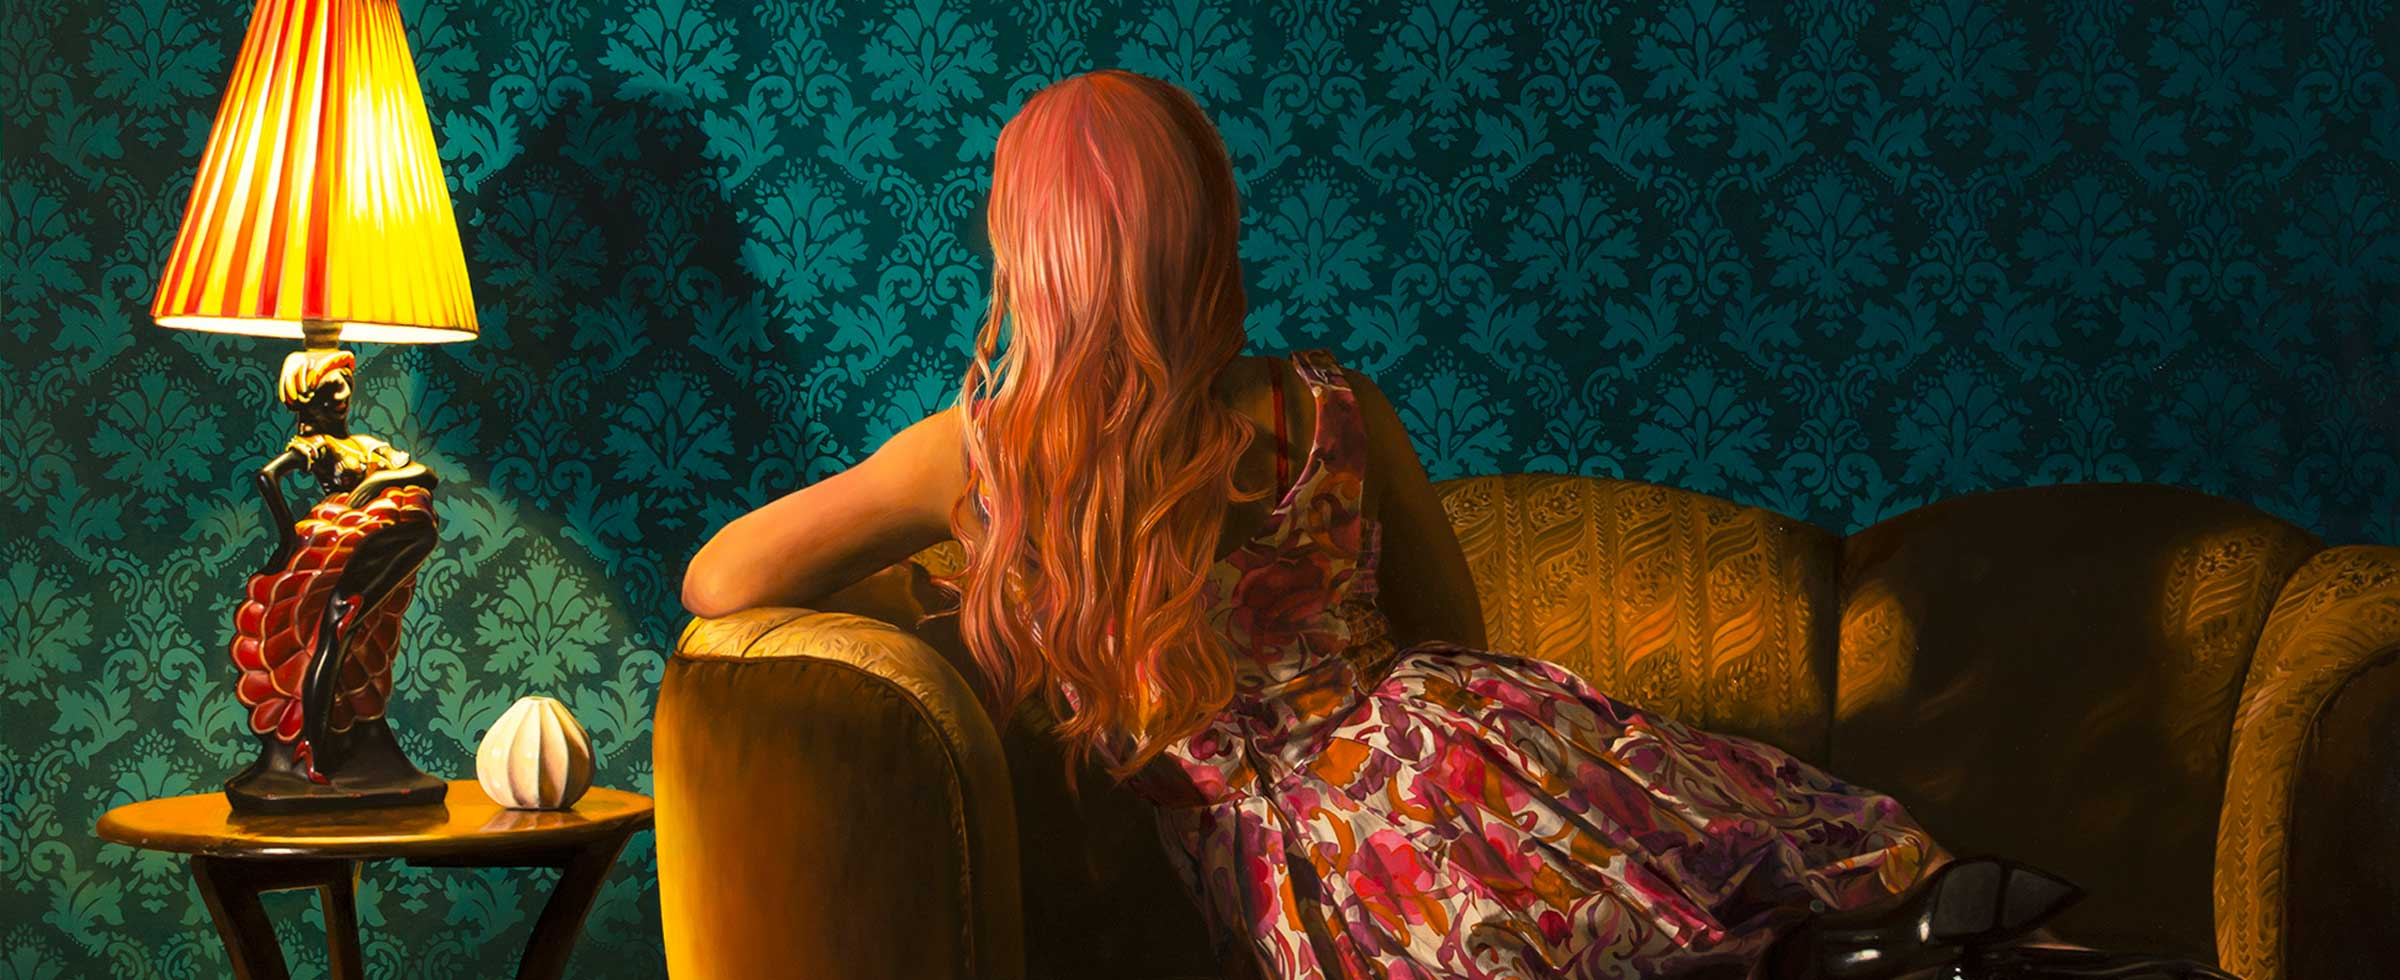 The Bennett Prize offers a $50K prize to women figurative painters.